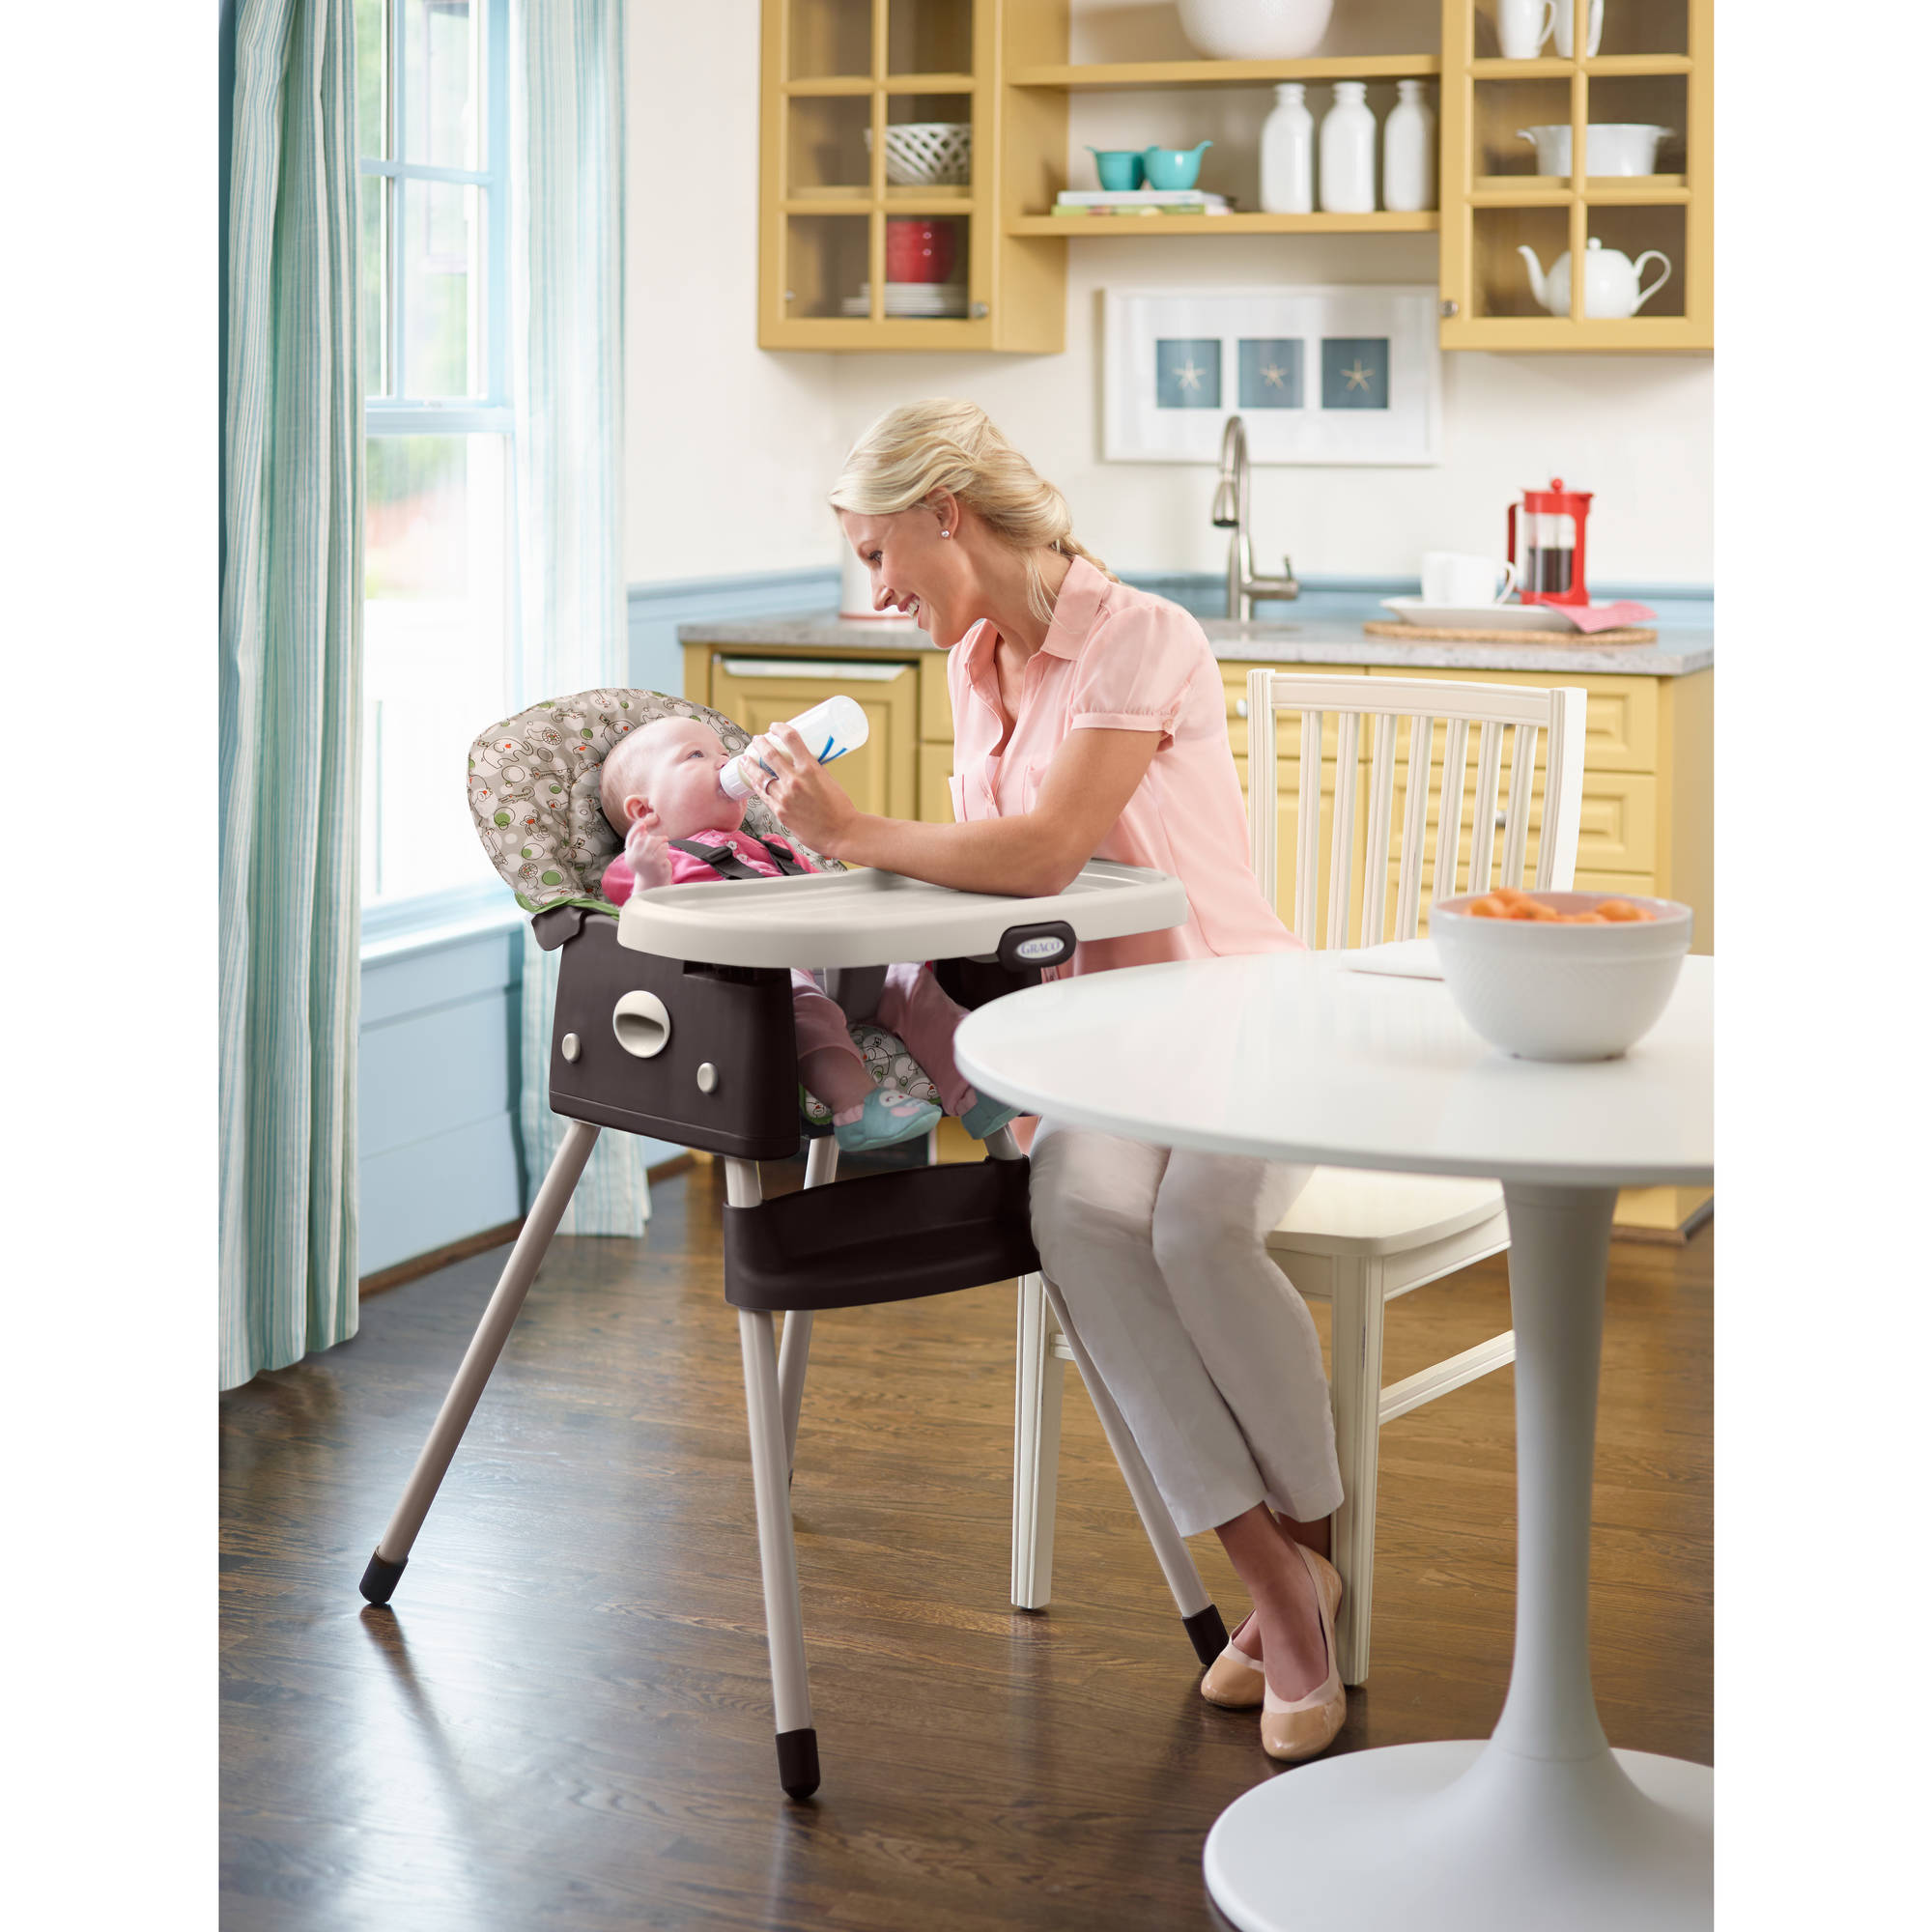 Graco SimpleSwitch 2 In 1 High Chair, Zuba   Walmart.com